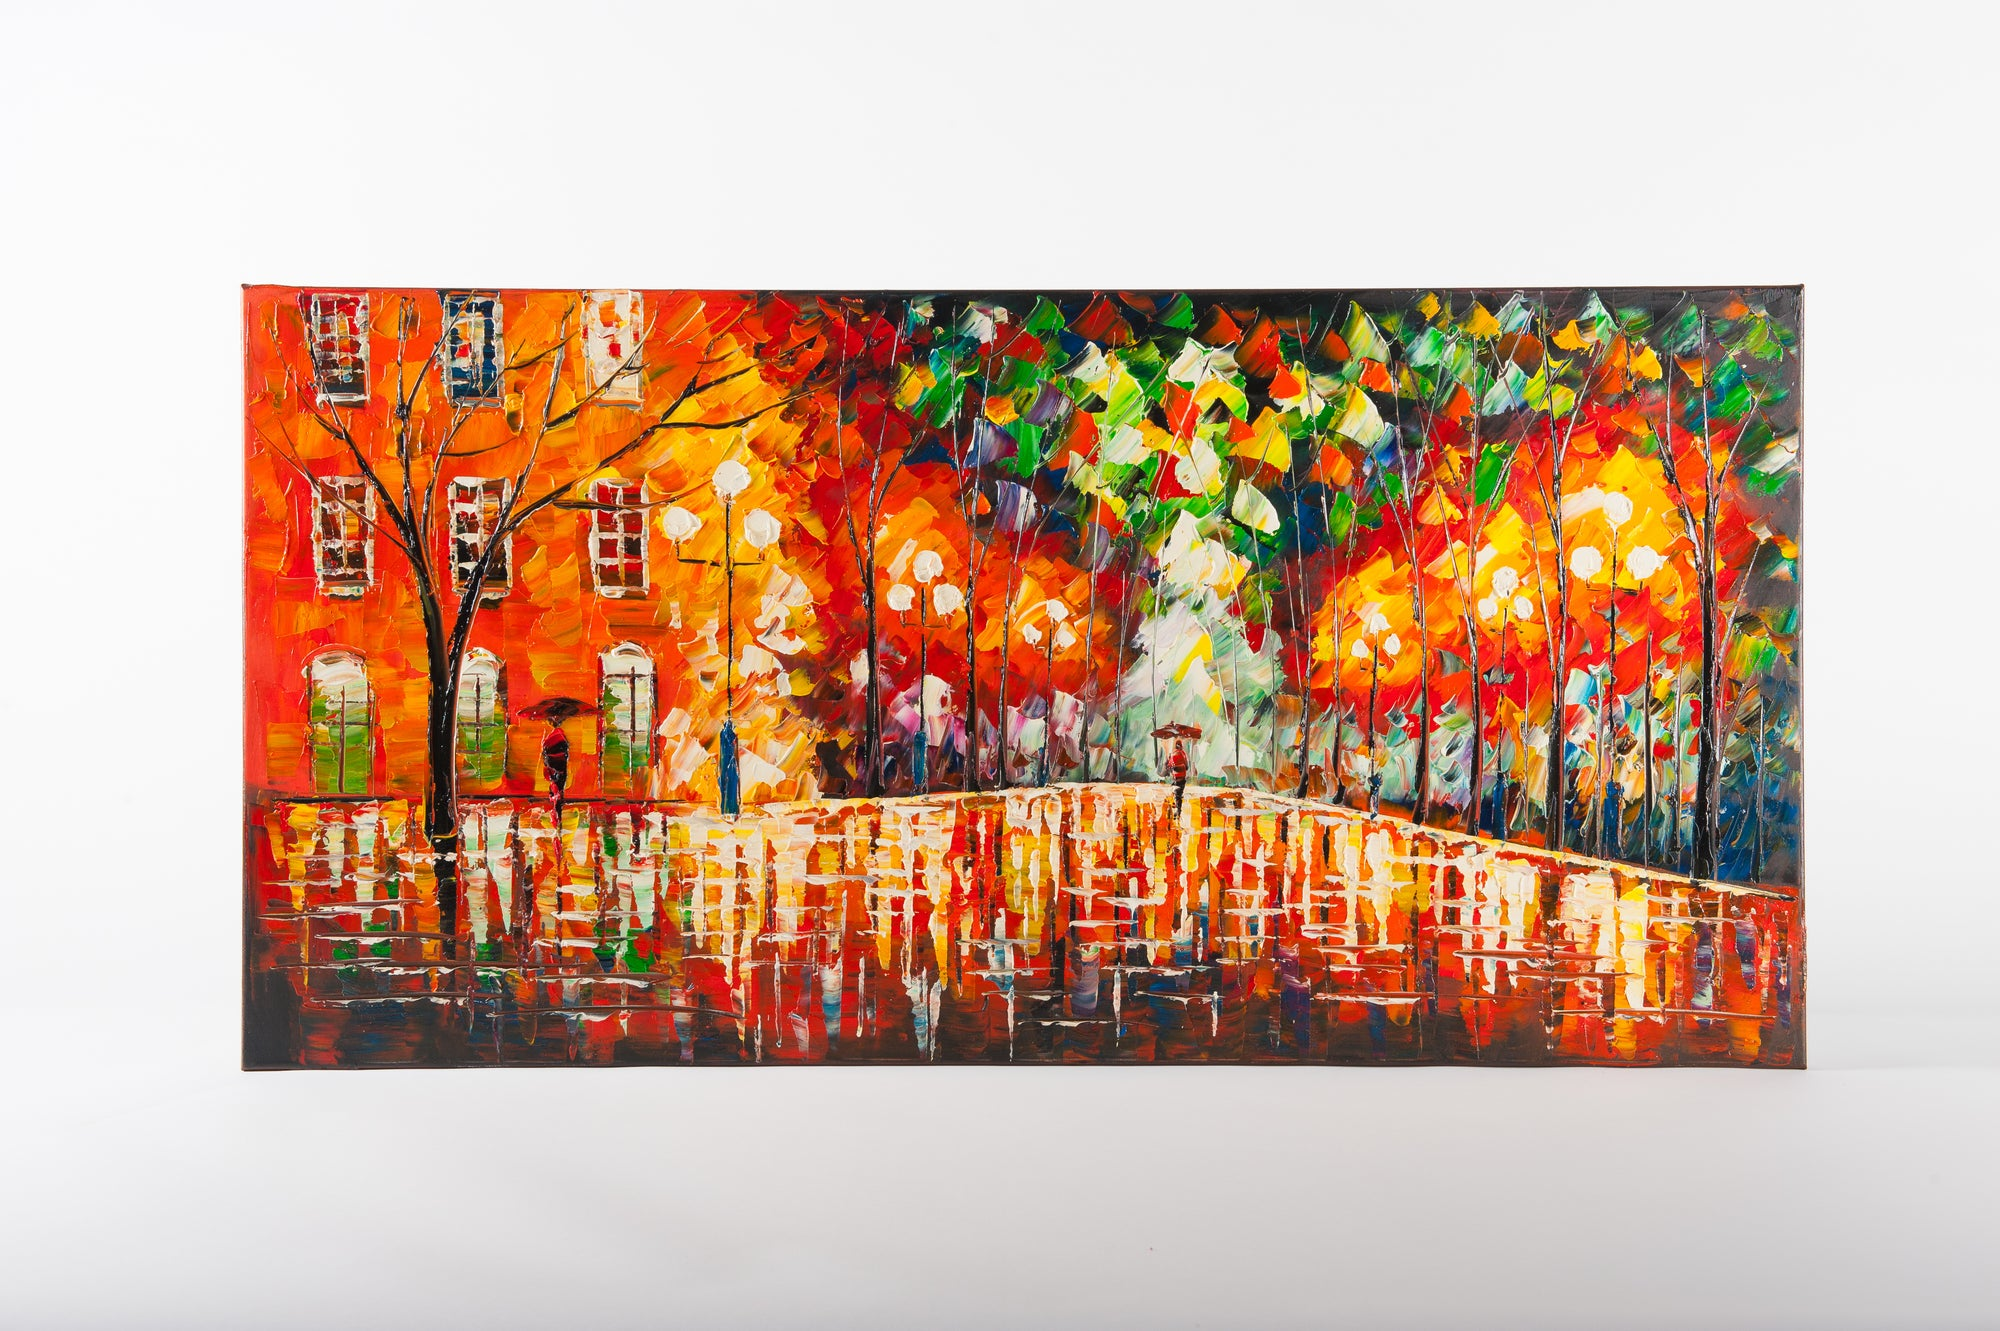 city night hand painted wall art on canvas - Fervor + Hue